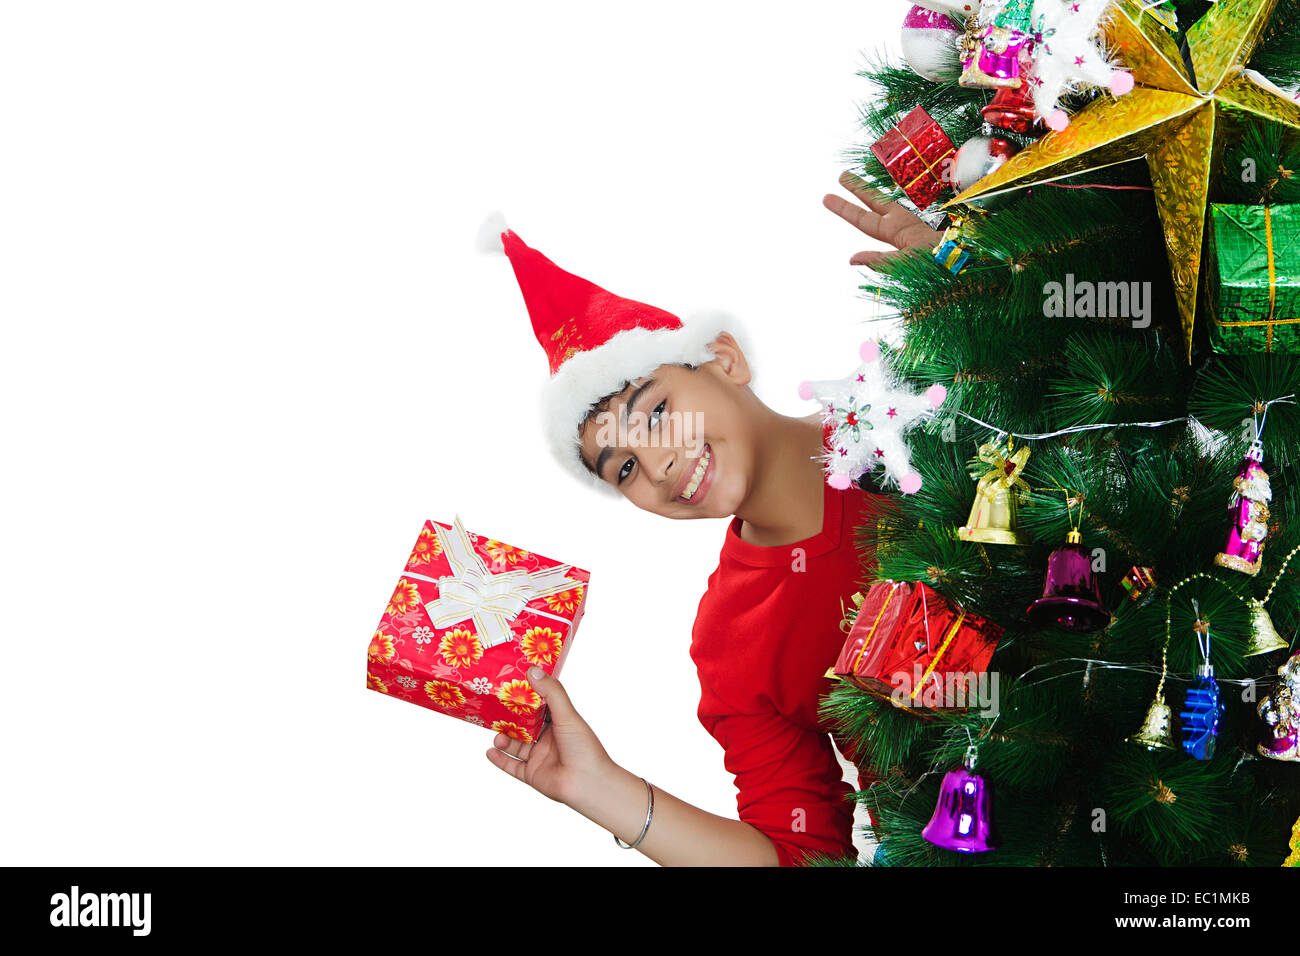 one indian boy Christmas Festival gift Stock Photo: 76255519 - Alamy